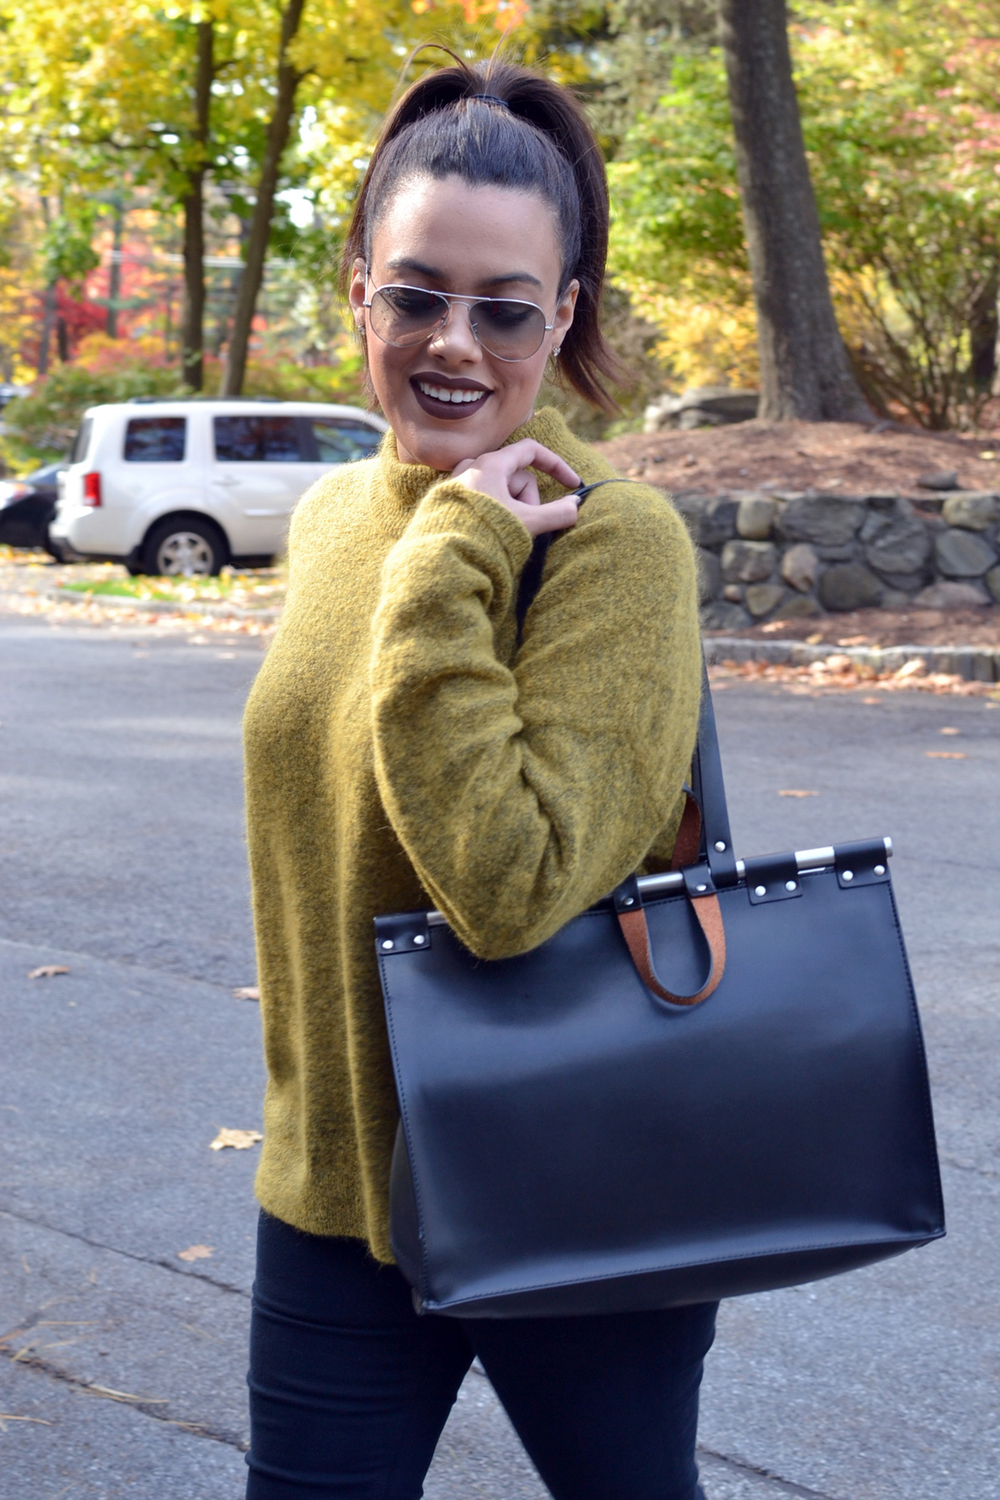 how-to-wear-hm-mustard-yellow-sweater-fall-fashion-zara-doctor-bag.jpg